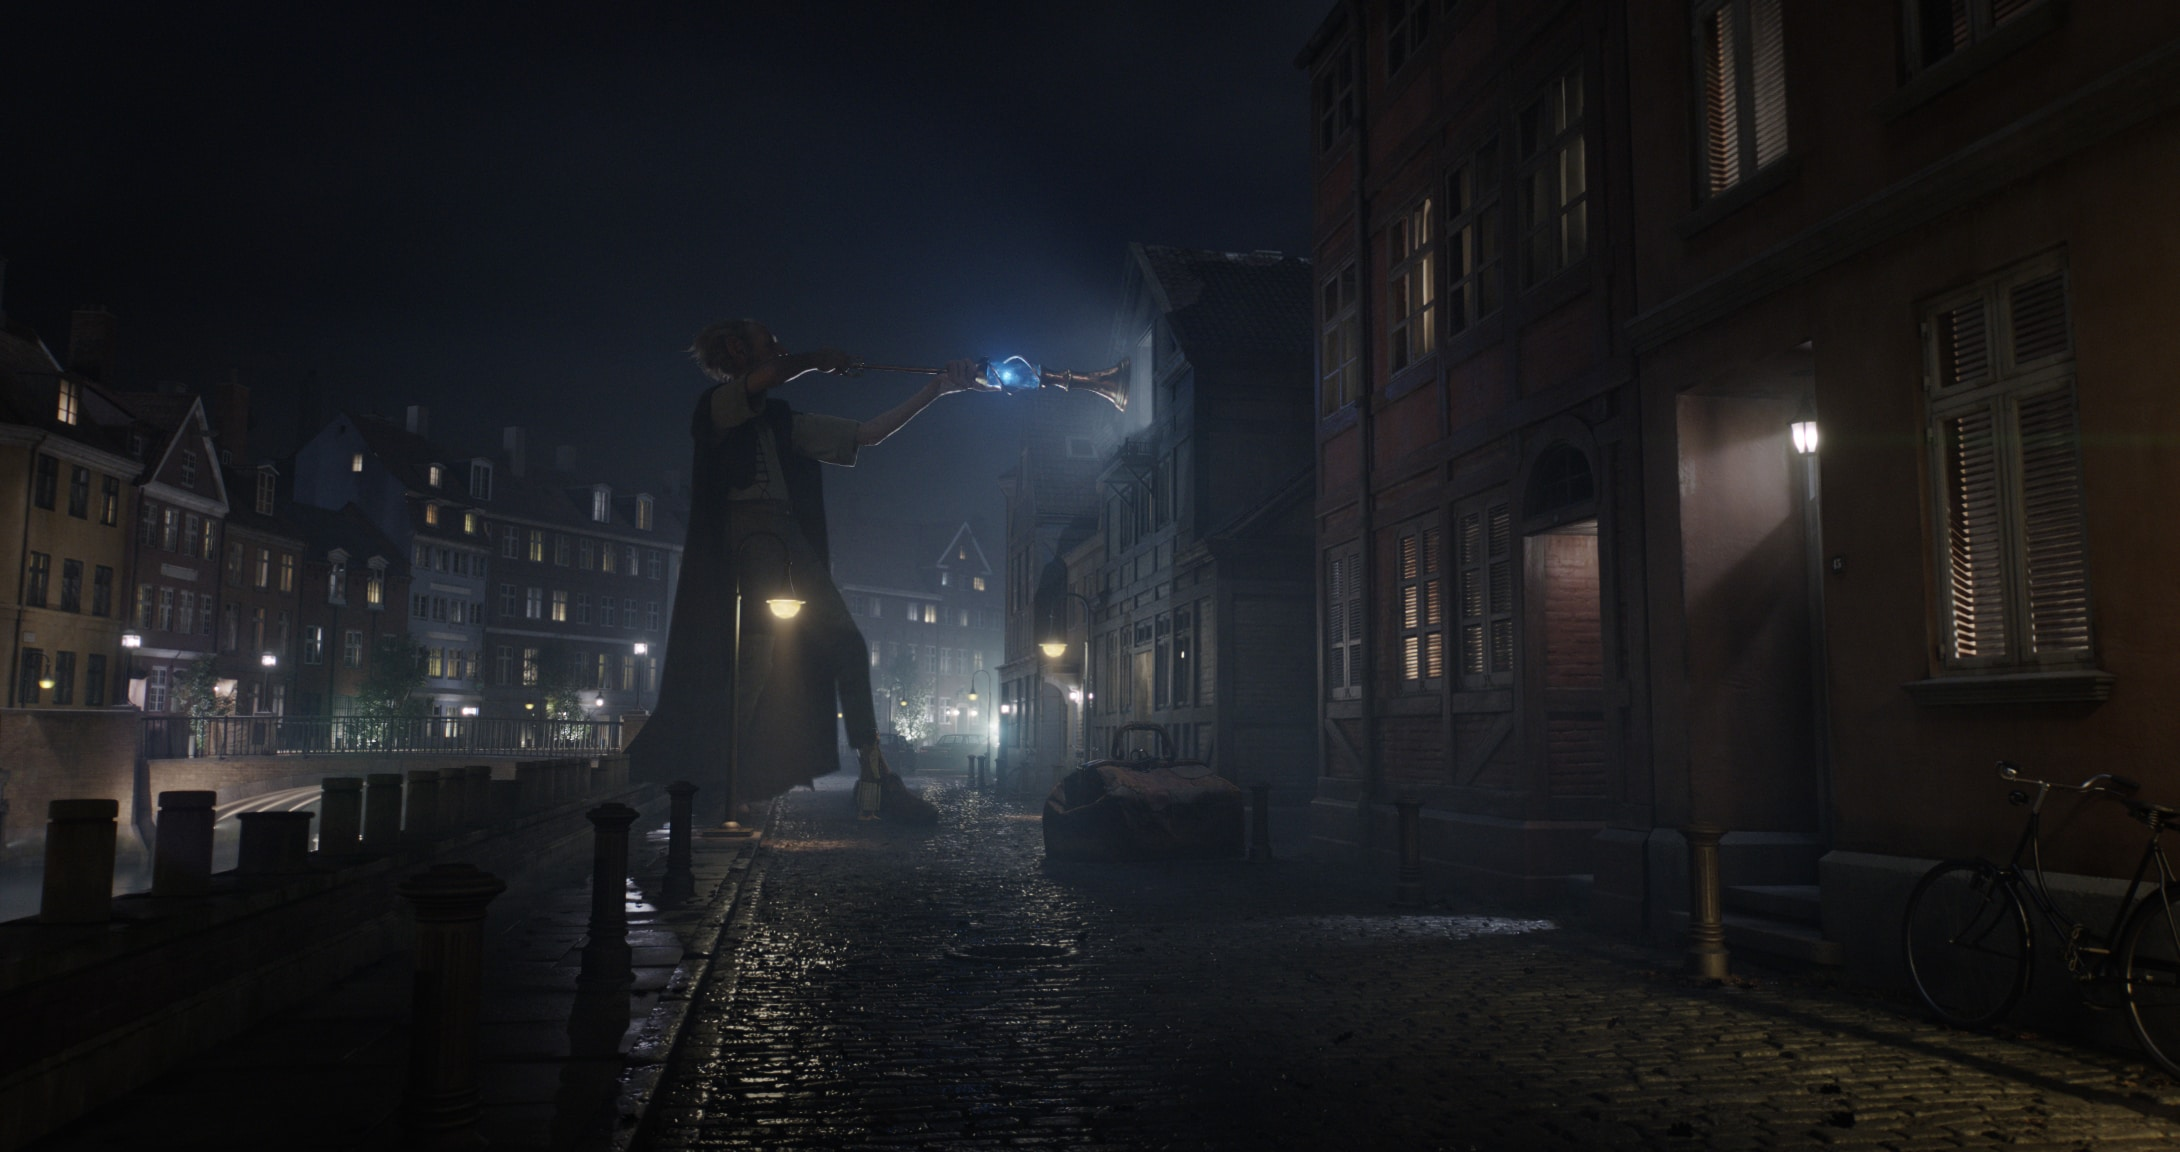 """The BFG (played by actor Mark Rylance) on a dark city street in the movie """"The BFG"""""""